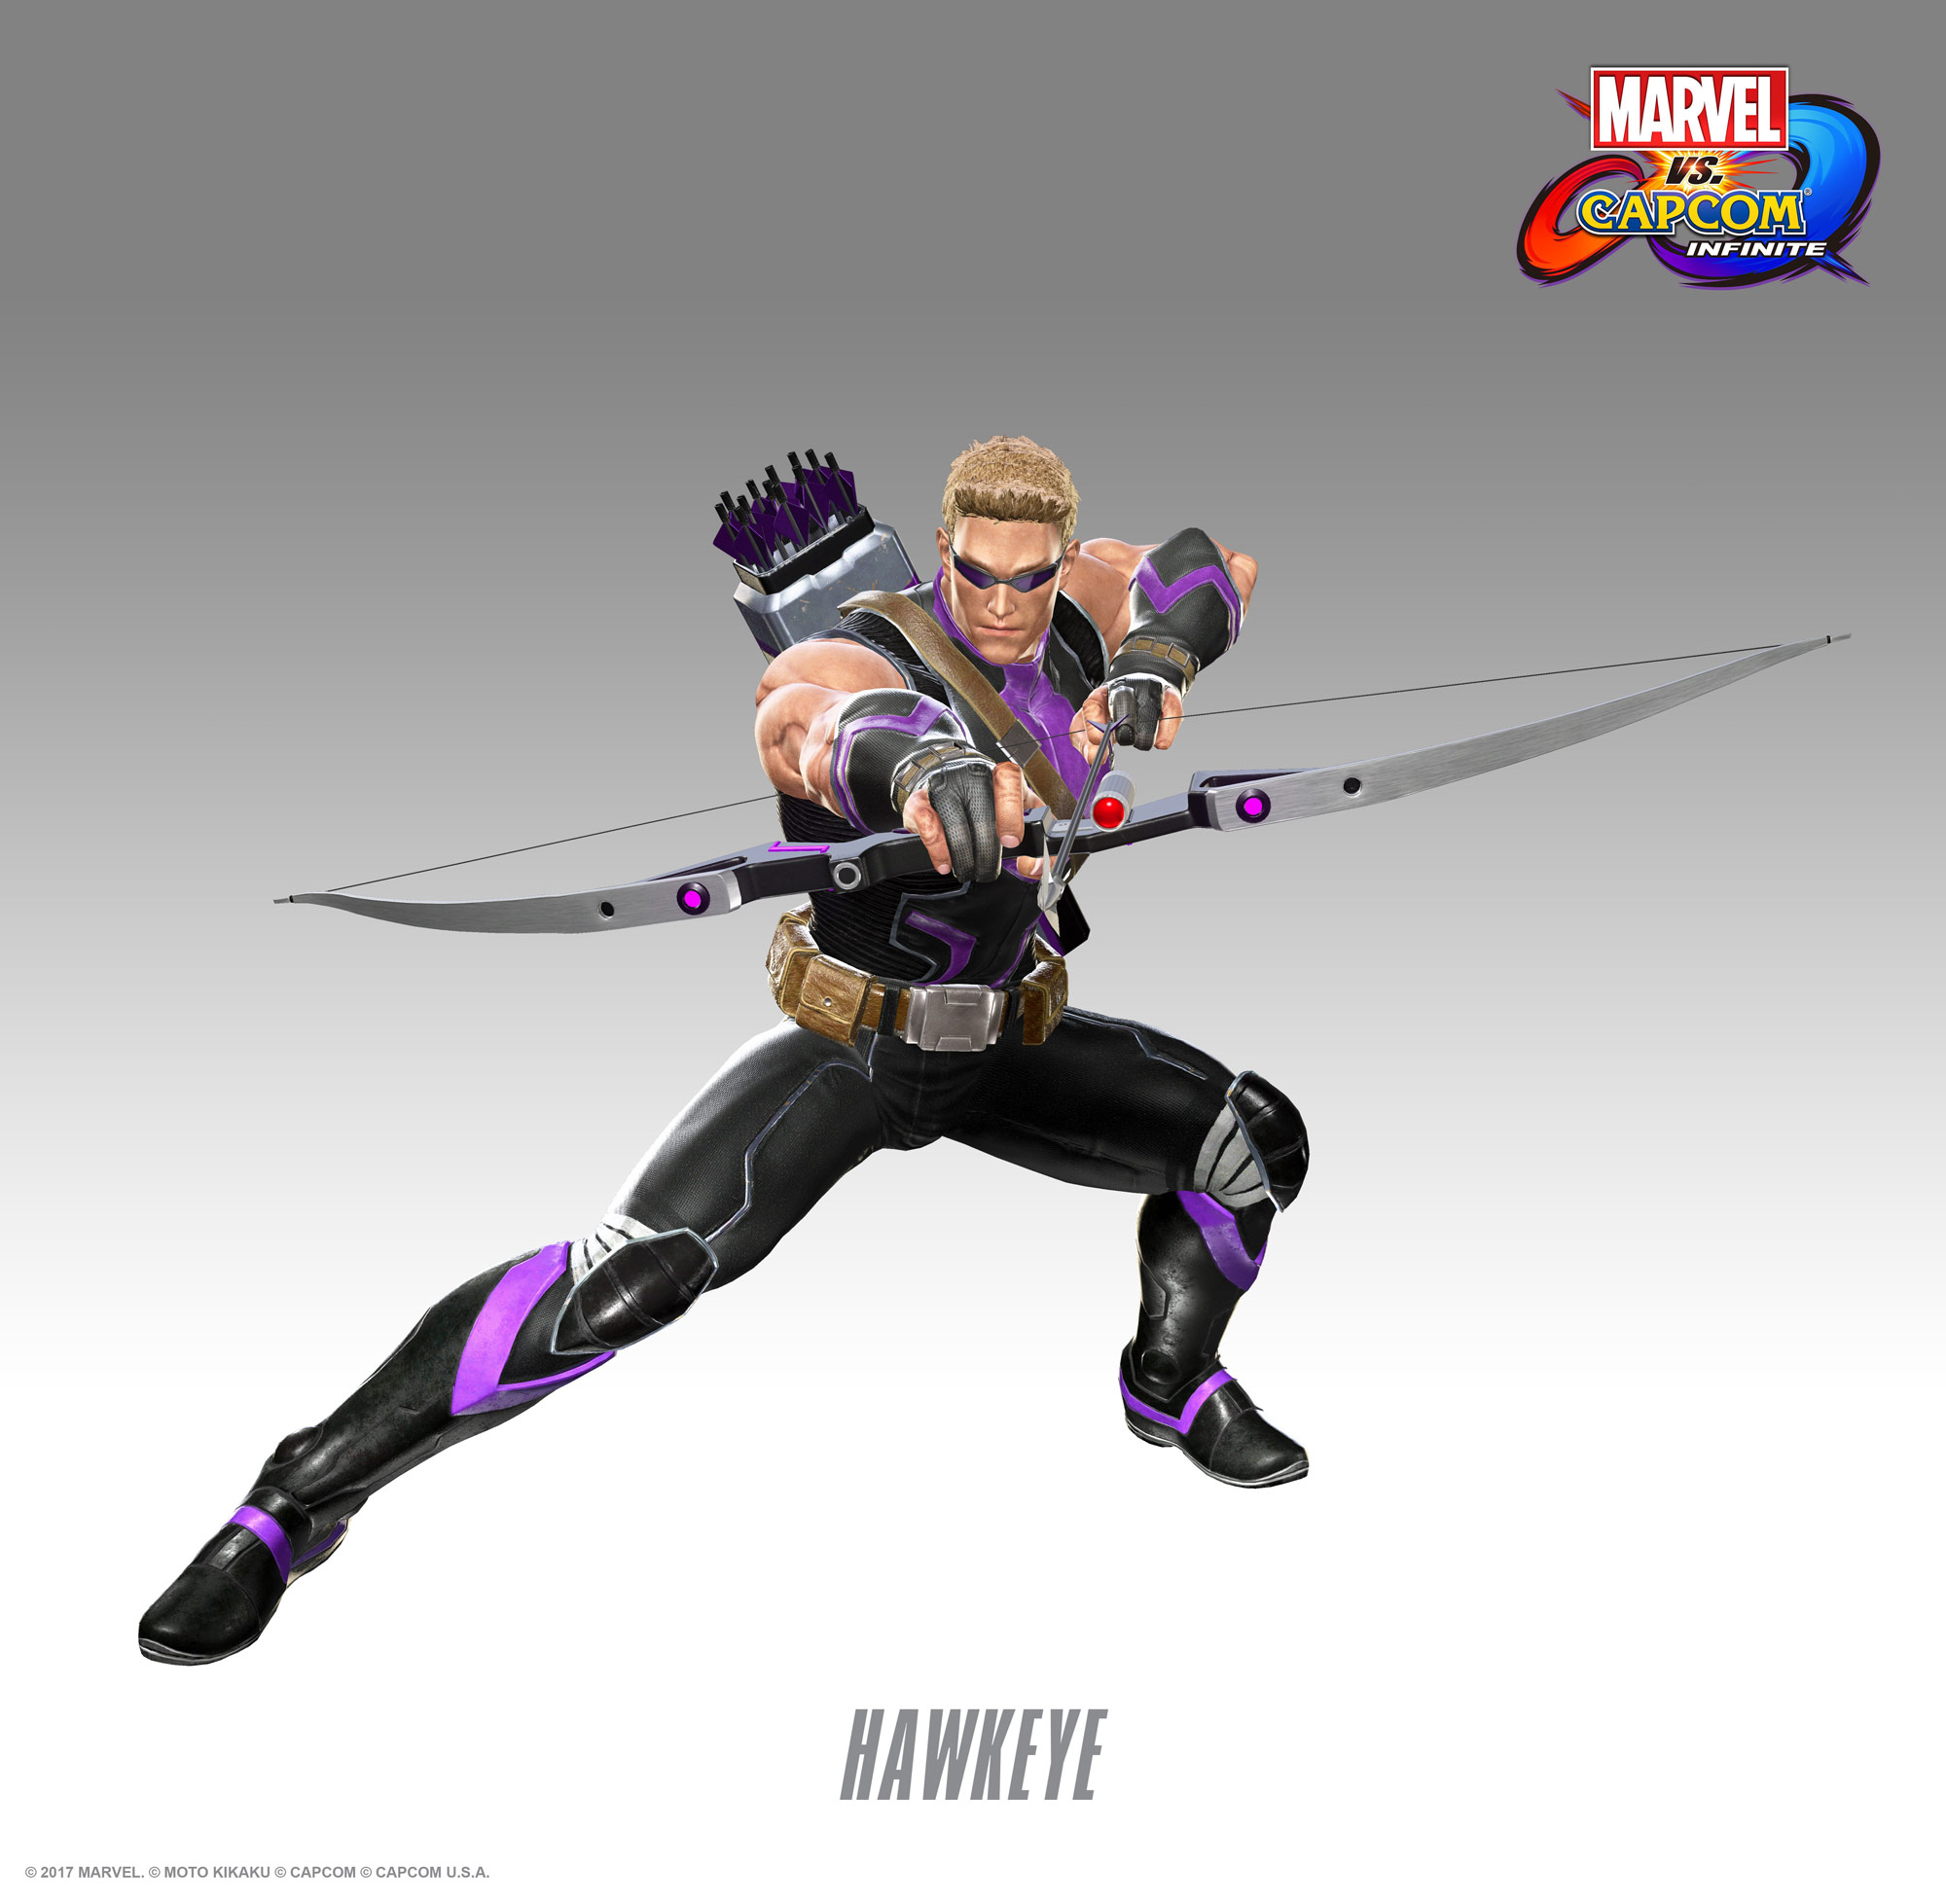 Marvel vs. Capcom: Infinite character artwork from E3 2017 12 out of 19 image gallery